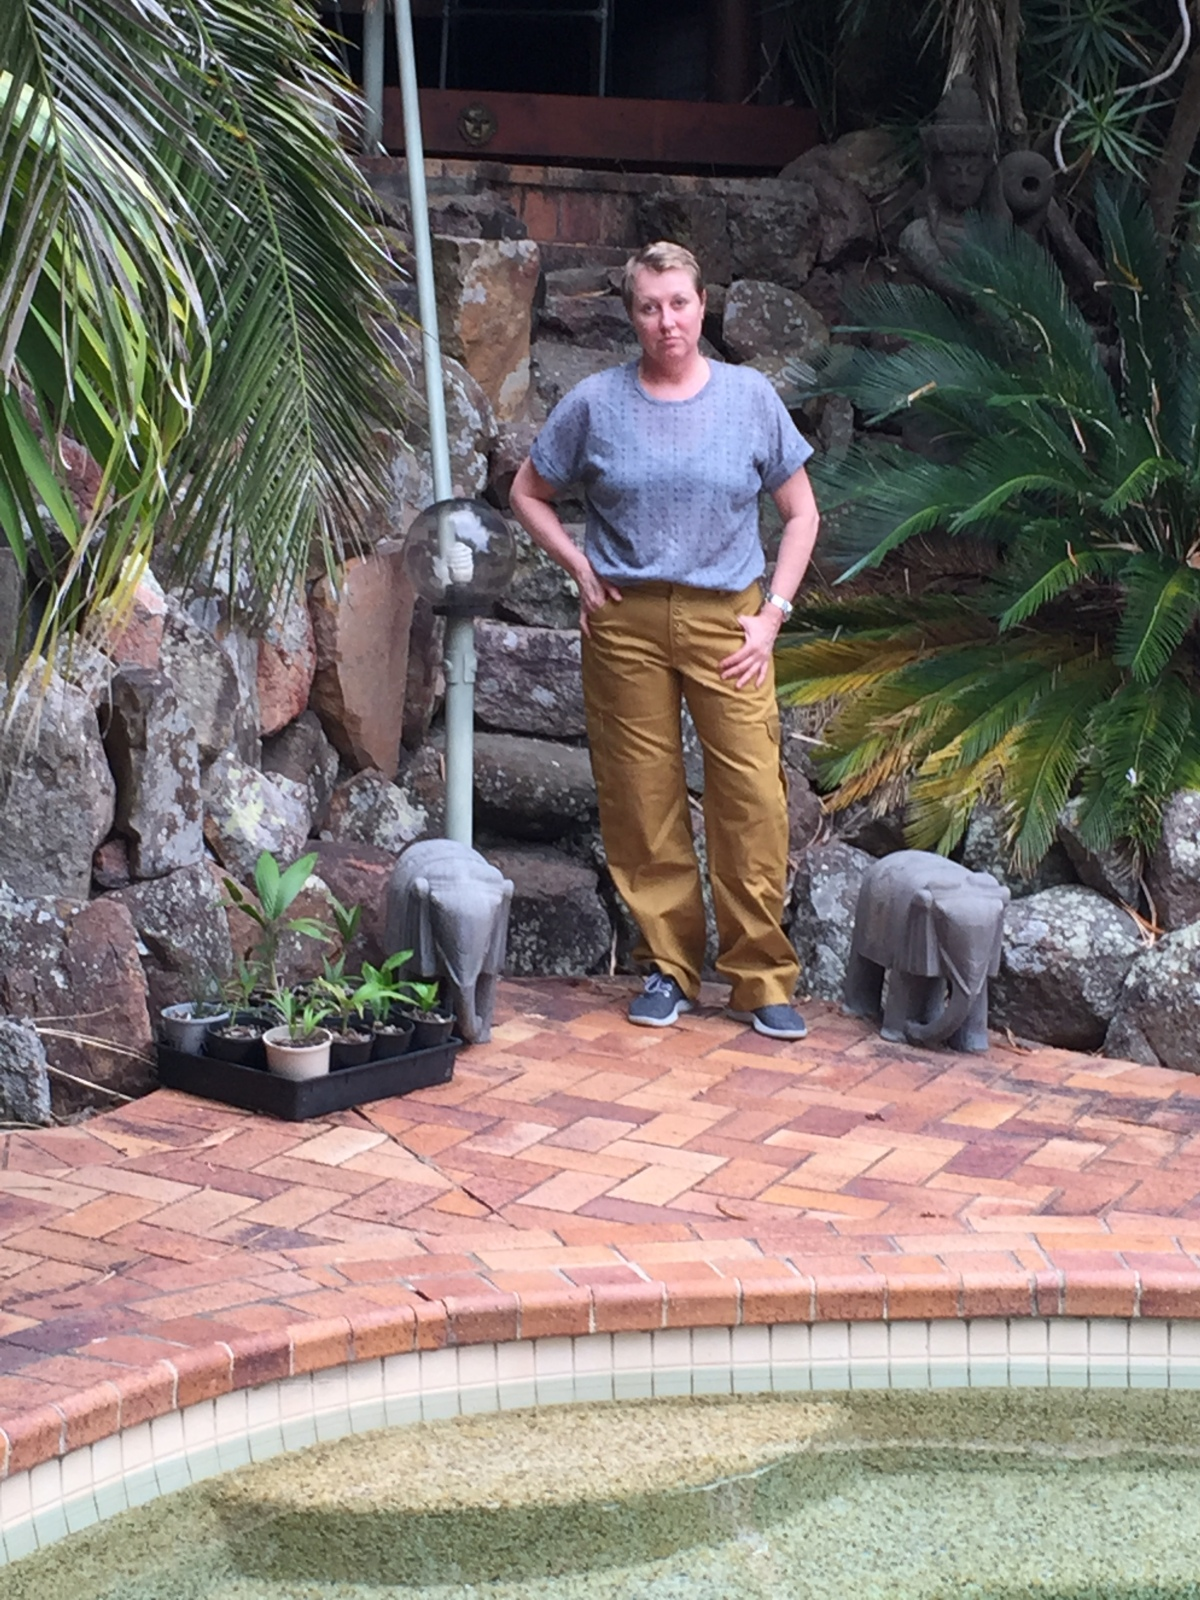 Michelle standing buy a lovely in-ground pool in tan cargo pants made from Jutland pattern